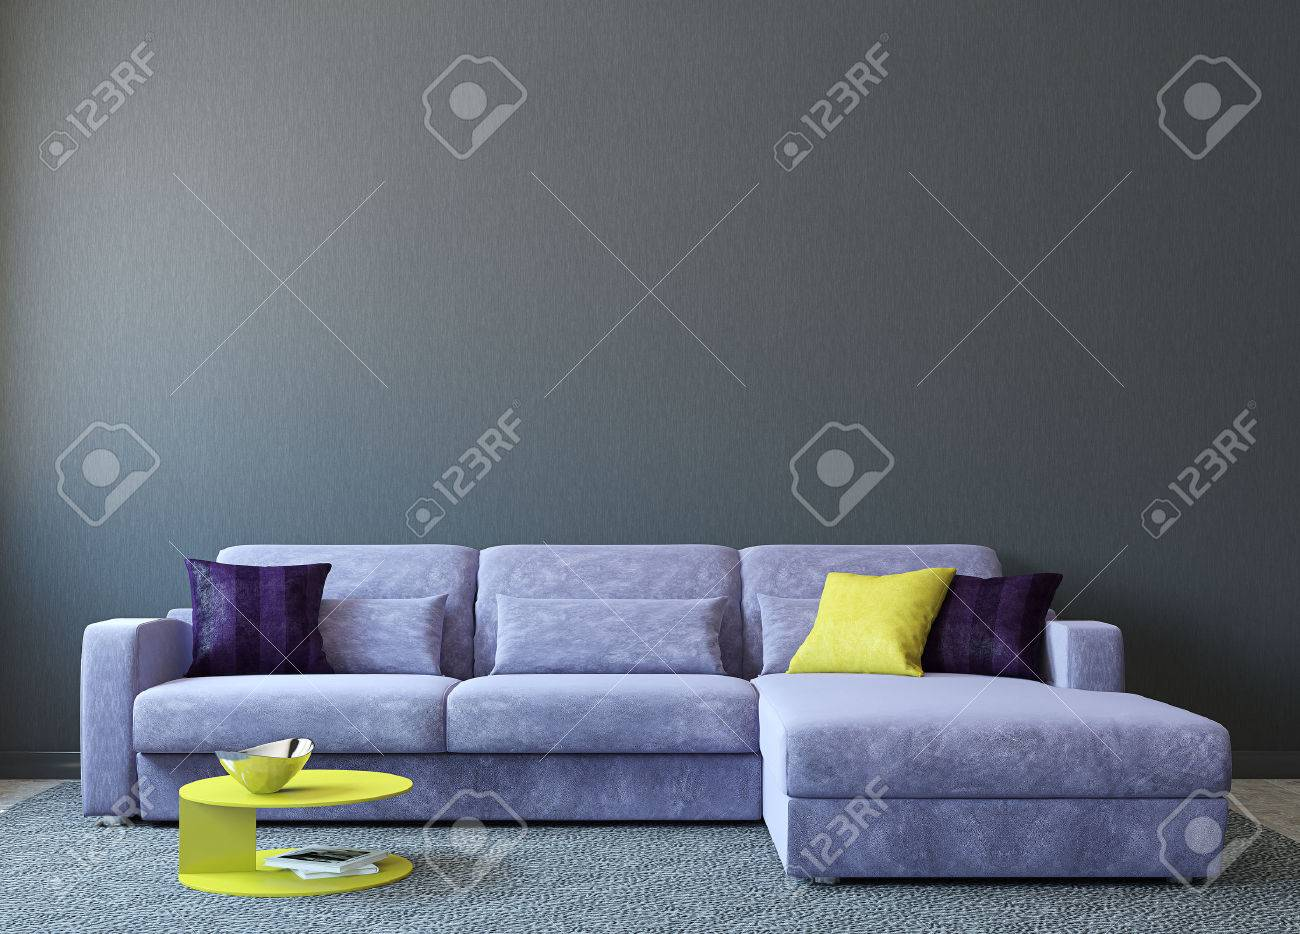 Wohnzimmer Graue Wand Stock Photo